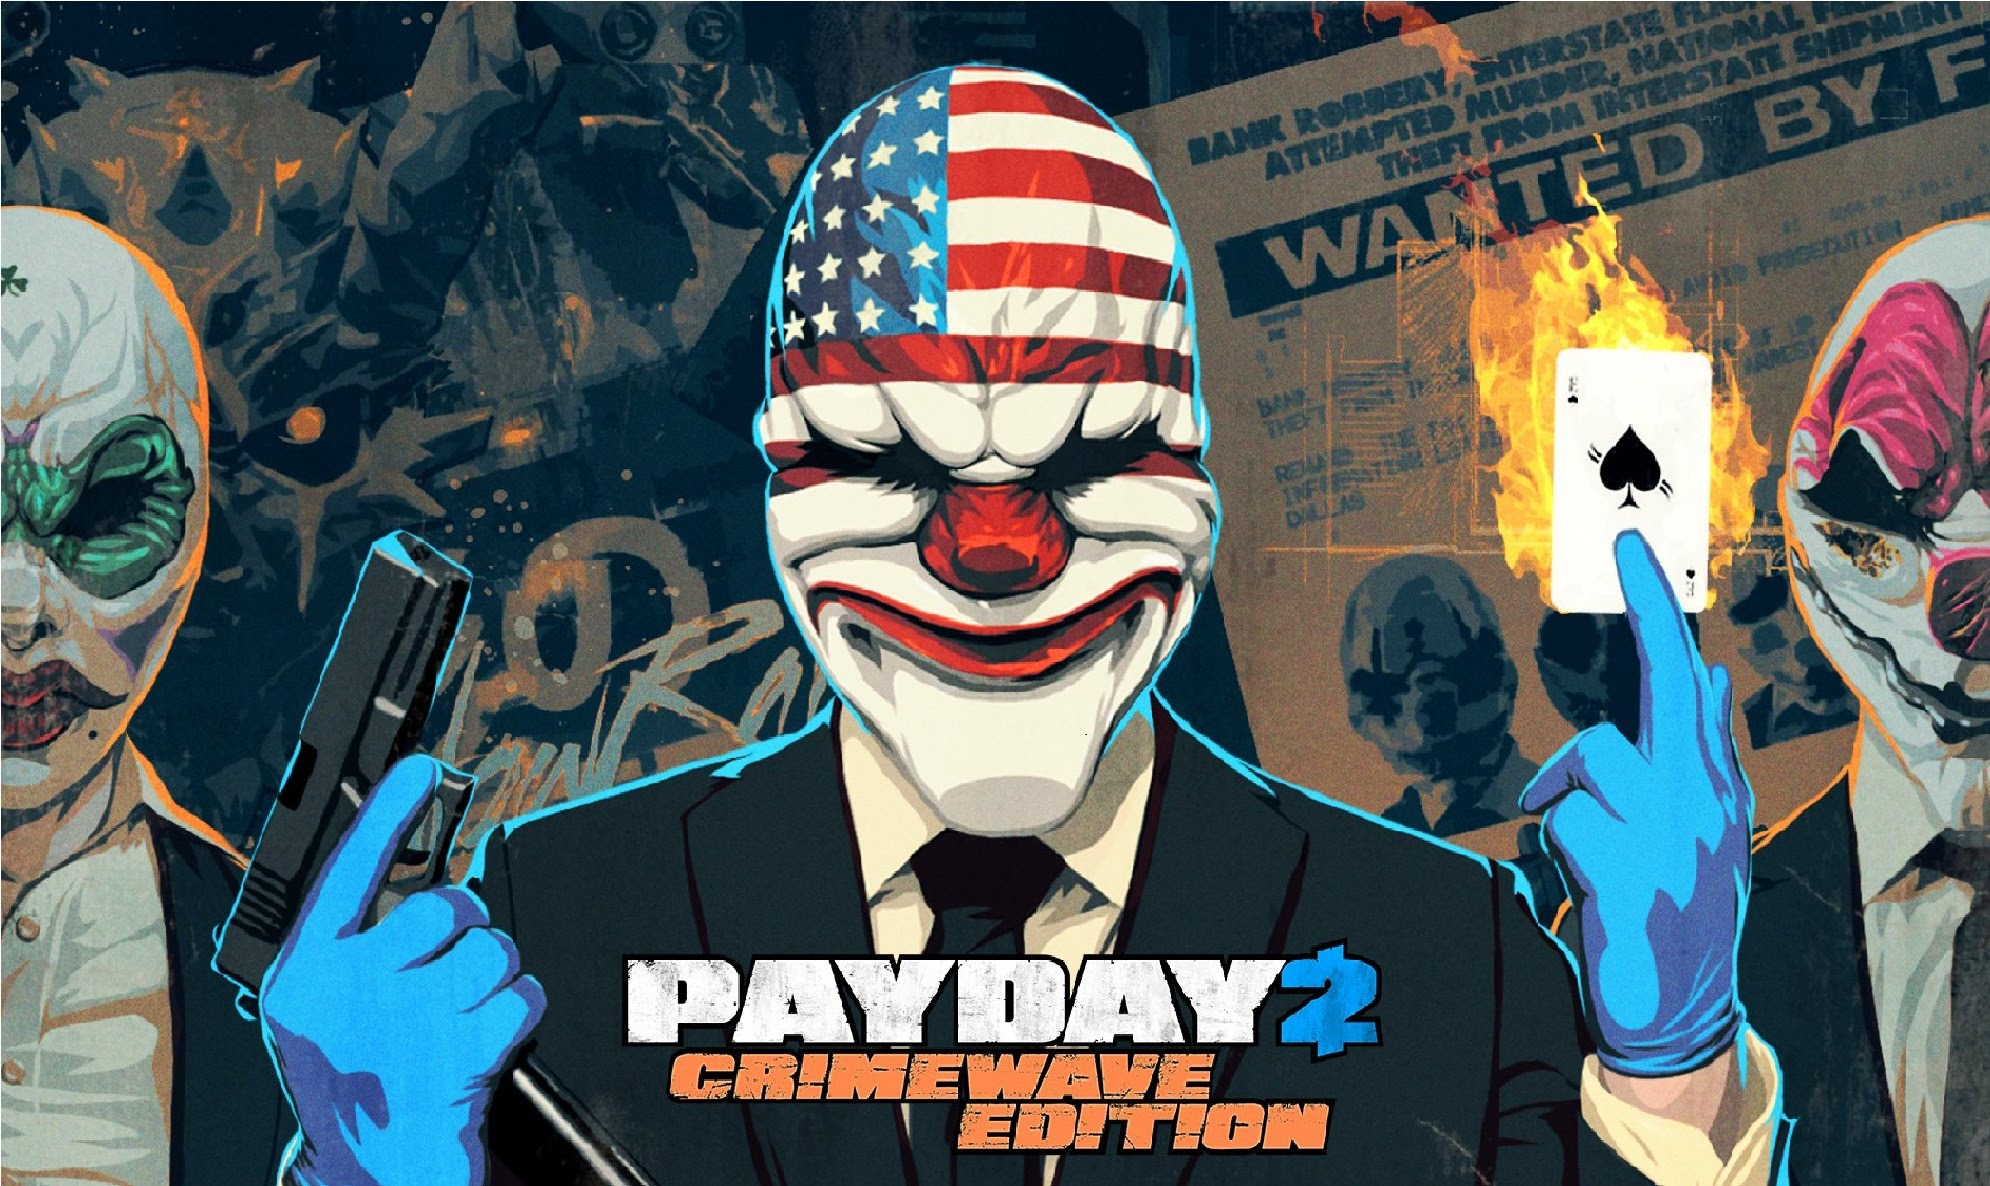 93 Payday 2 Hd Wallpapers Background Images Wallpaper Abyss